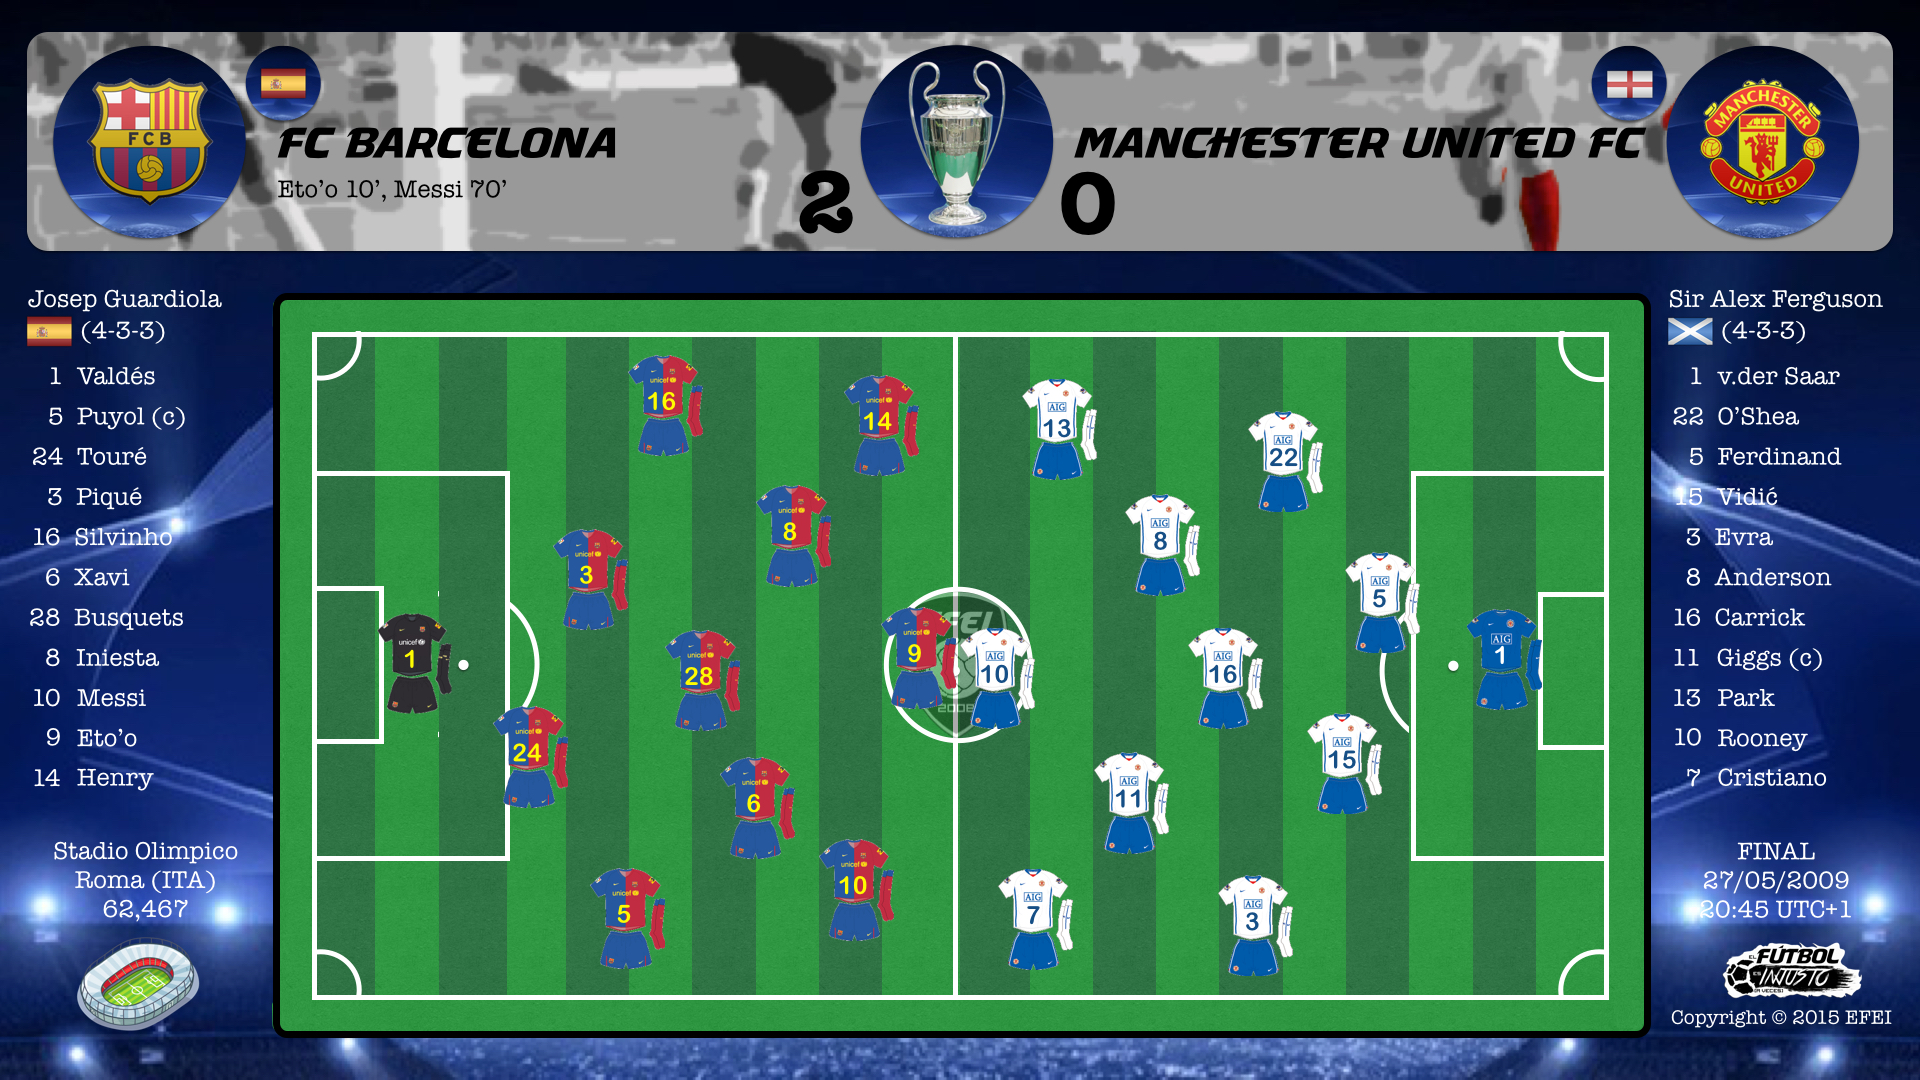 UEFA Champions League Final 2009 Barcelona Manchester United